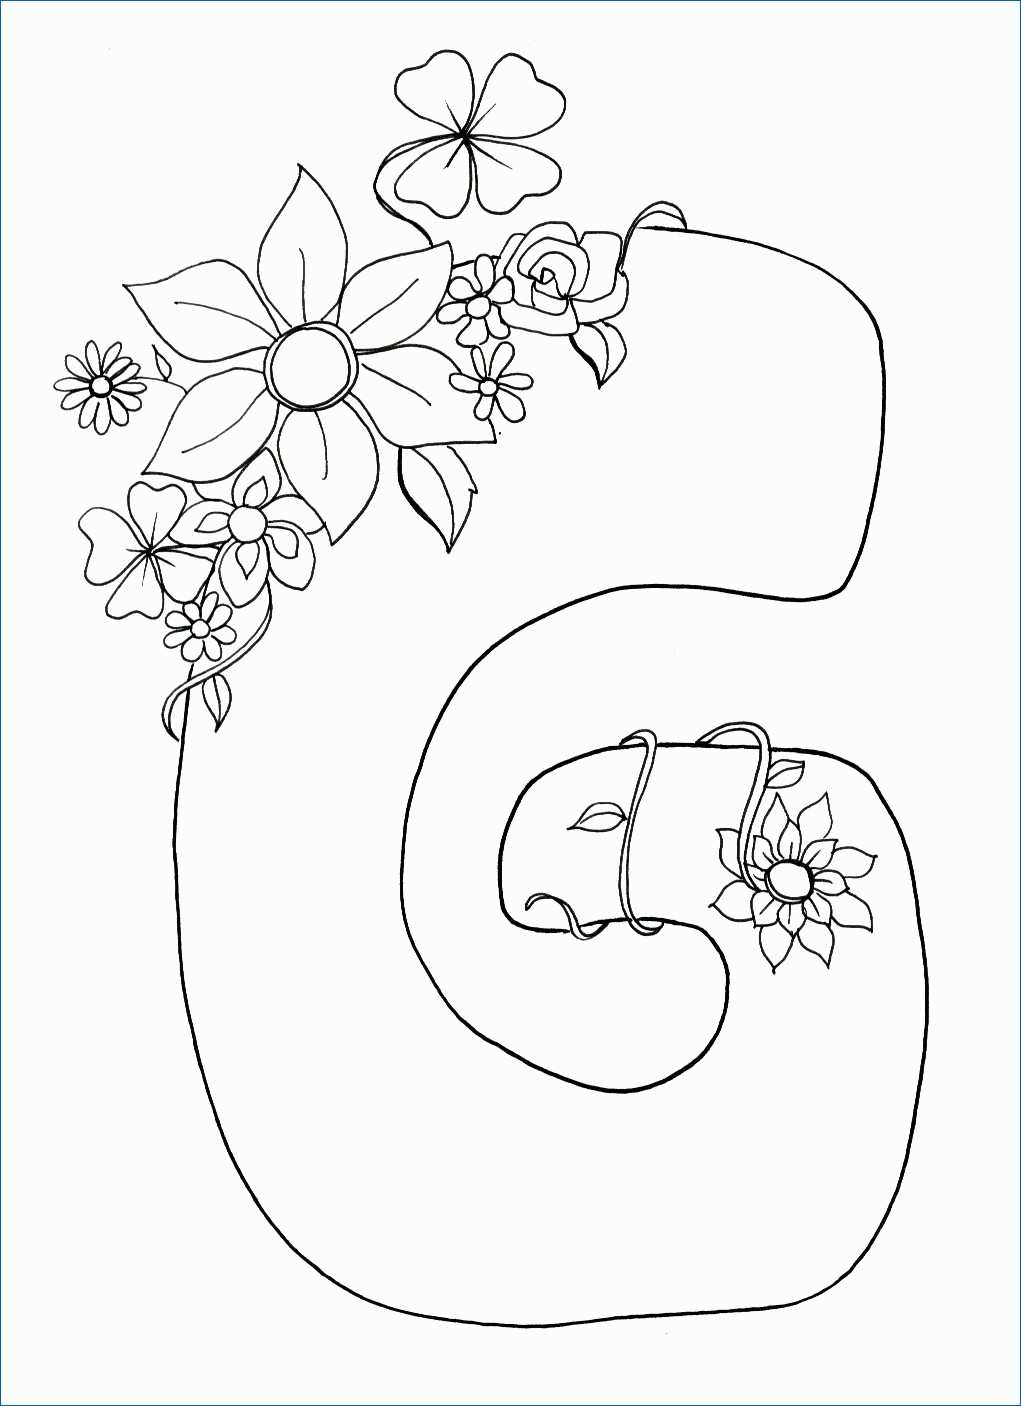 Letter G Coloring Pages G Coloring Pages Best 20 Fresh G Coloring Pages Tourmandu Coloring